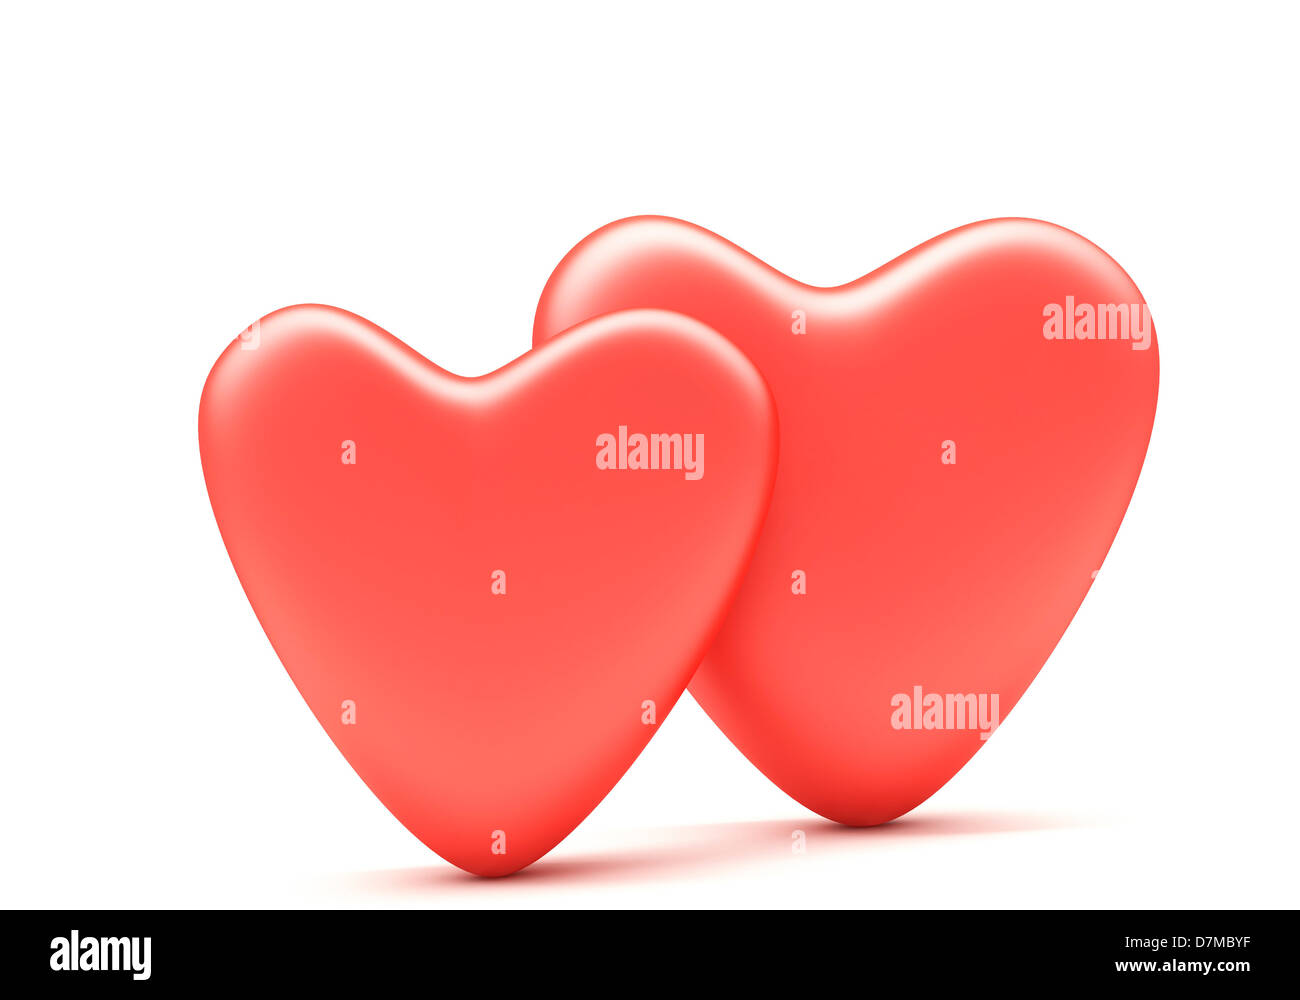 Red hearts artwork - Stock Image